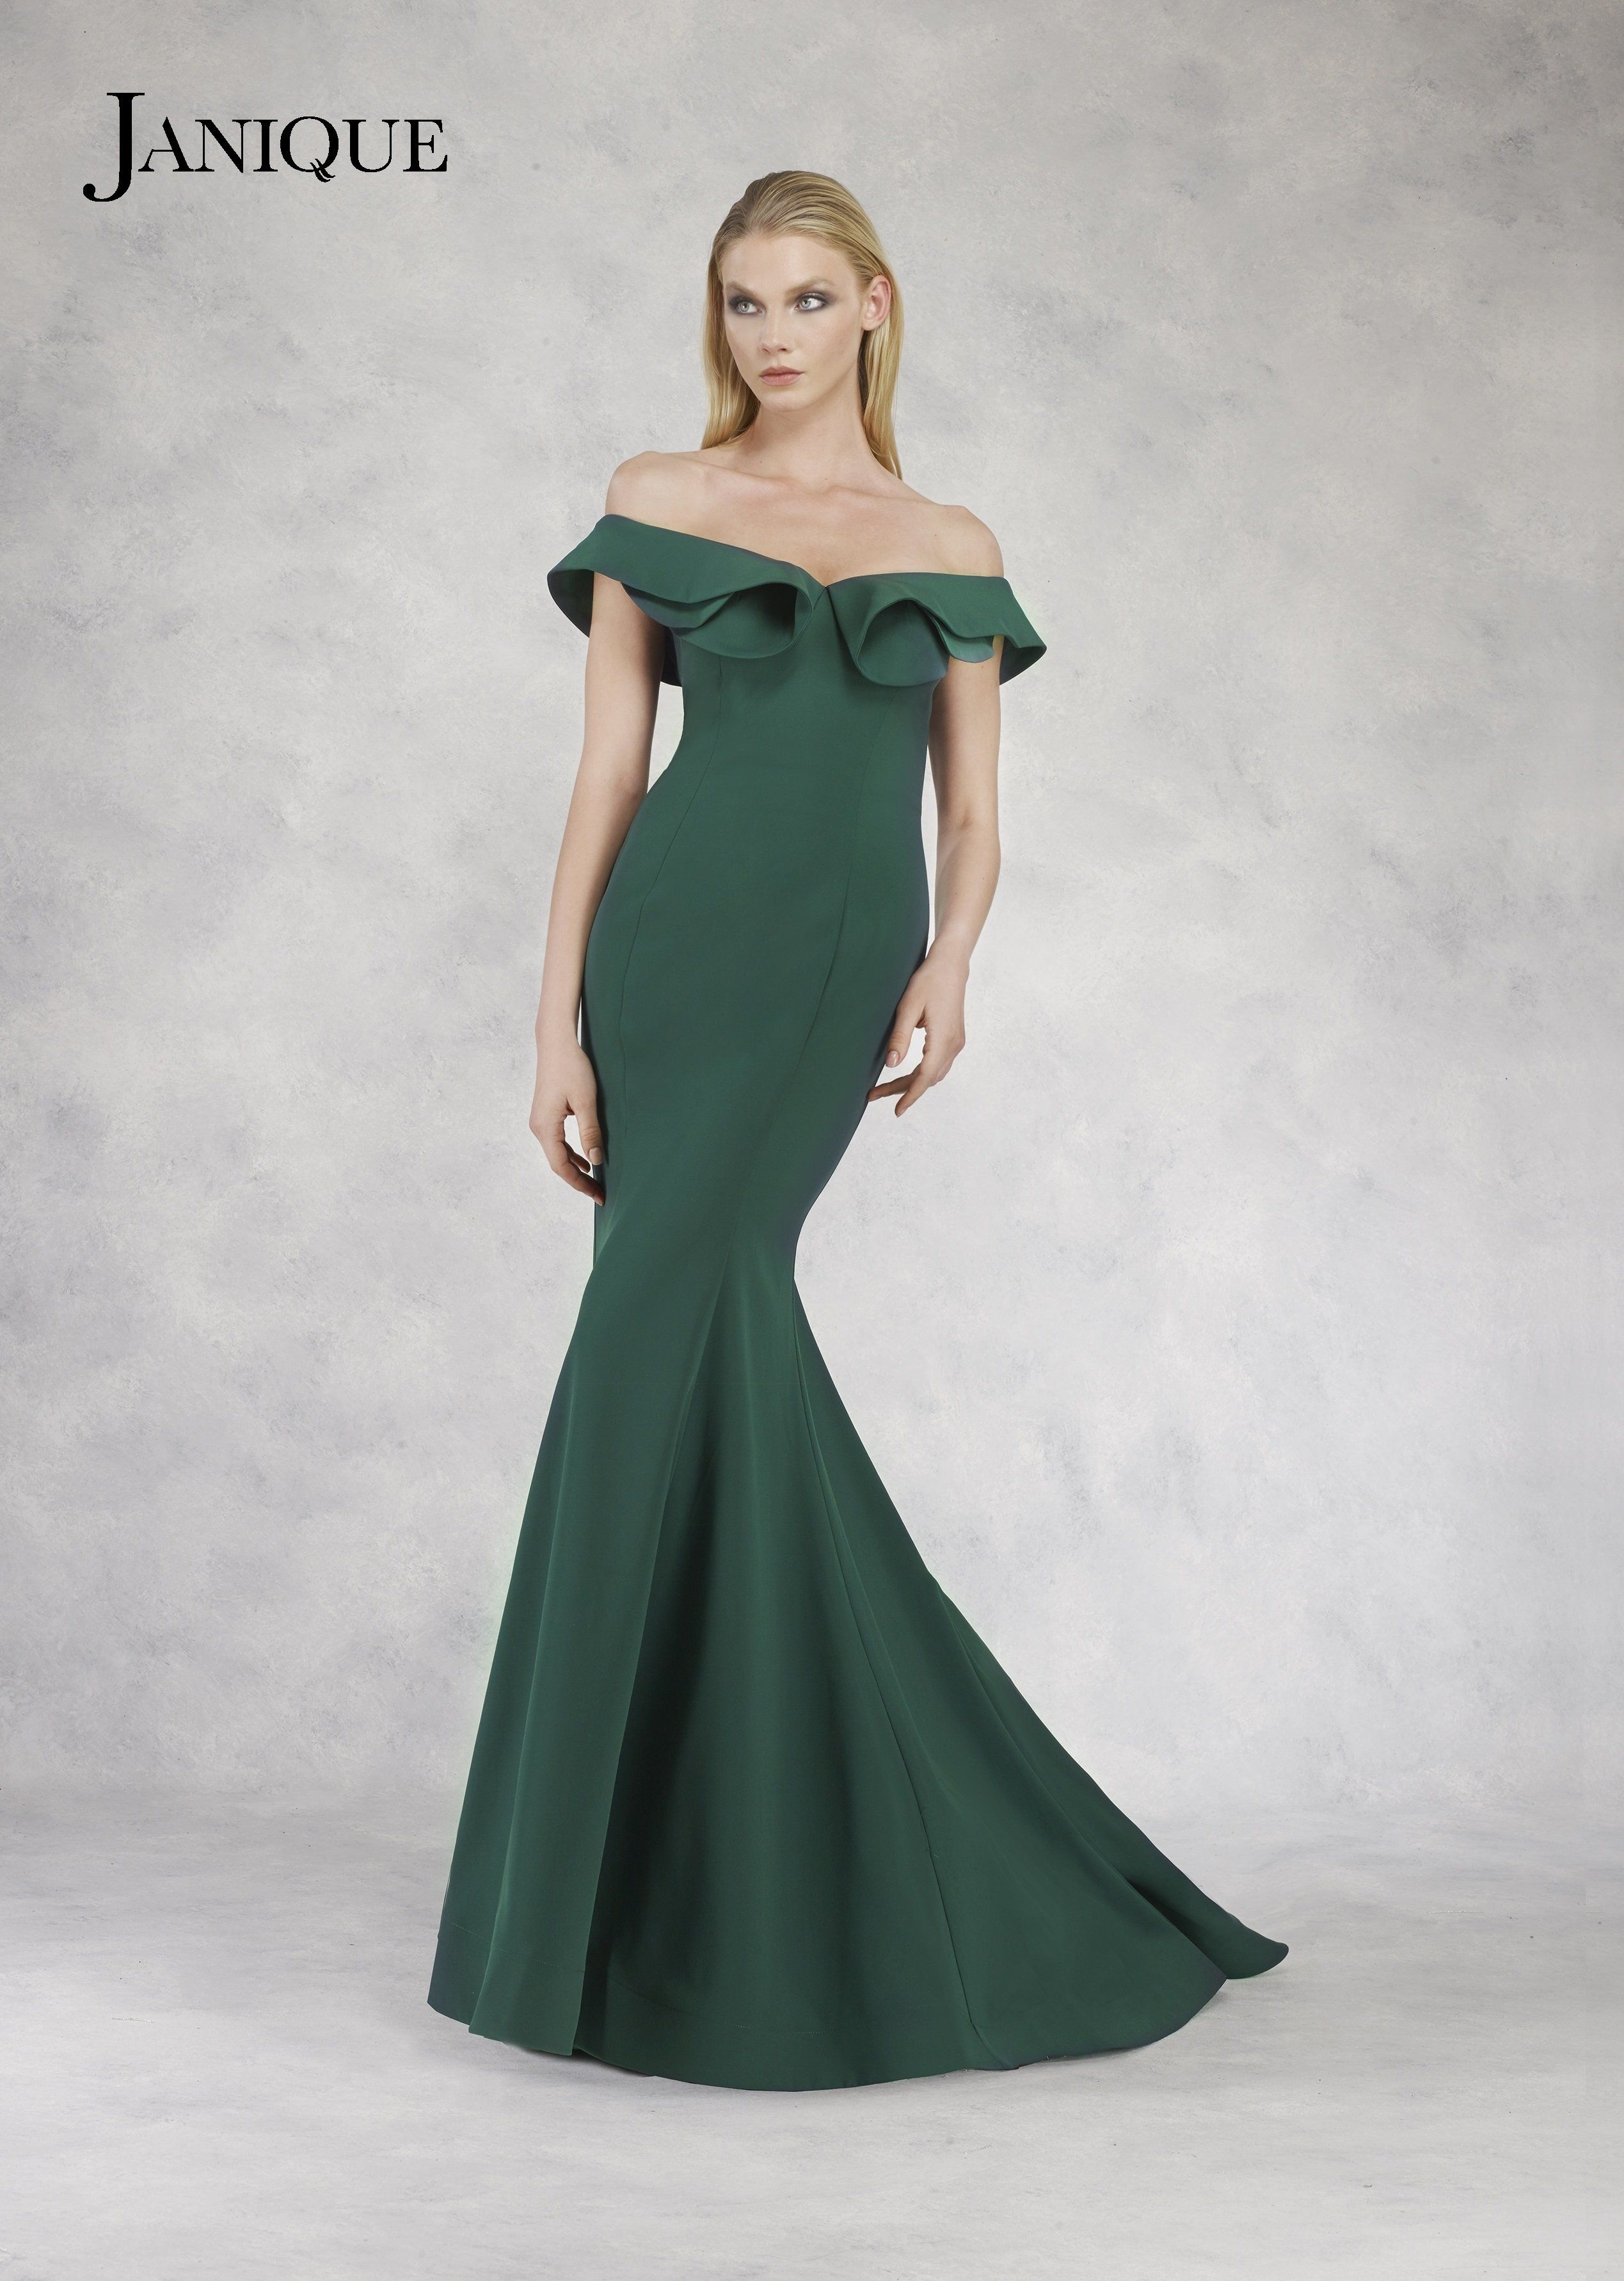 Janique sydney ruffled fitted evening gown products pinterest